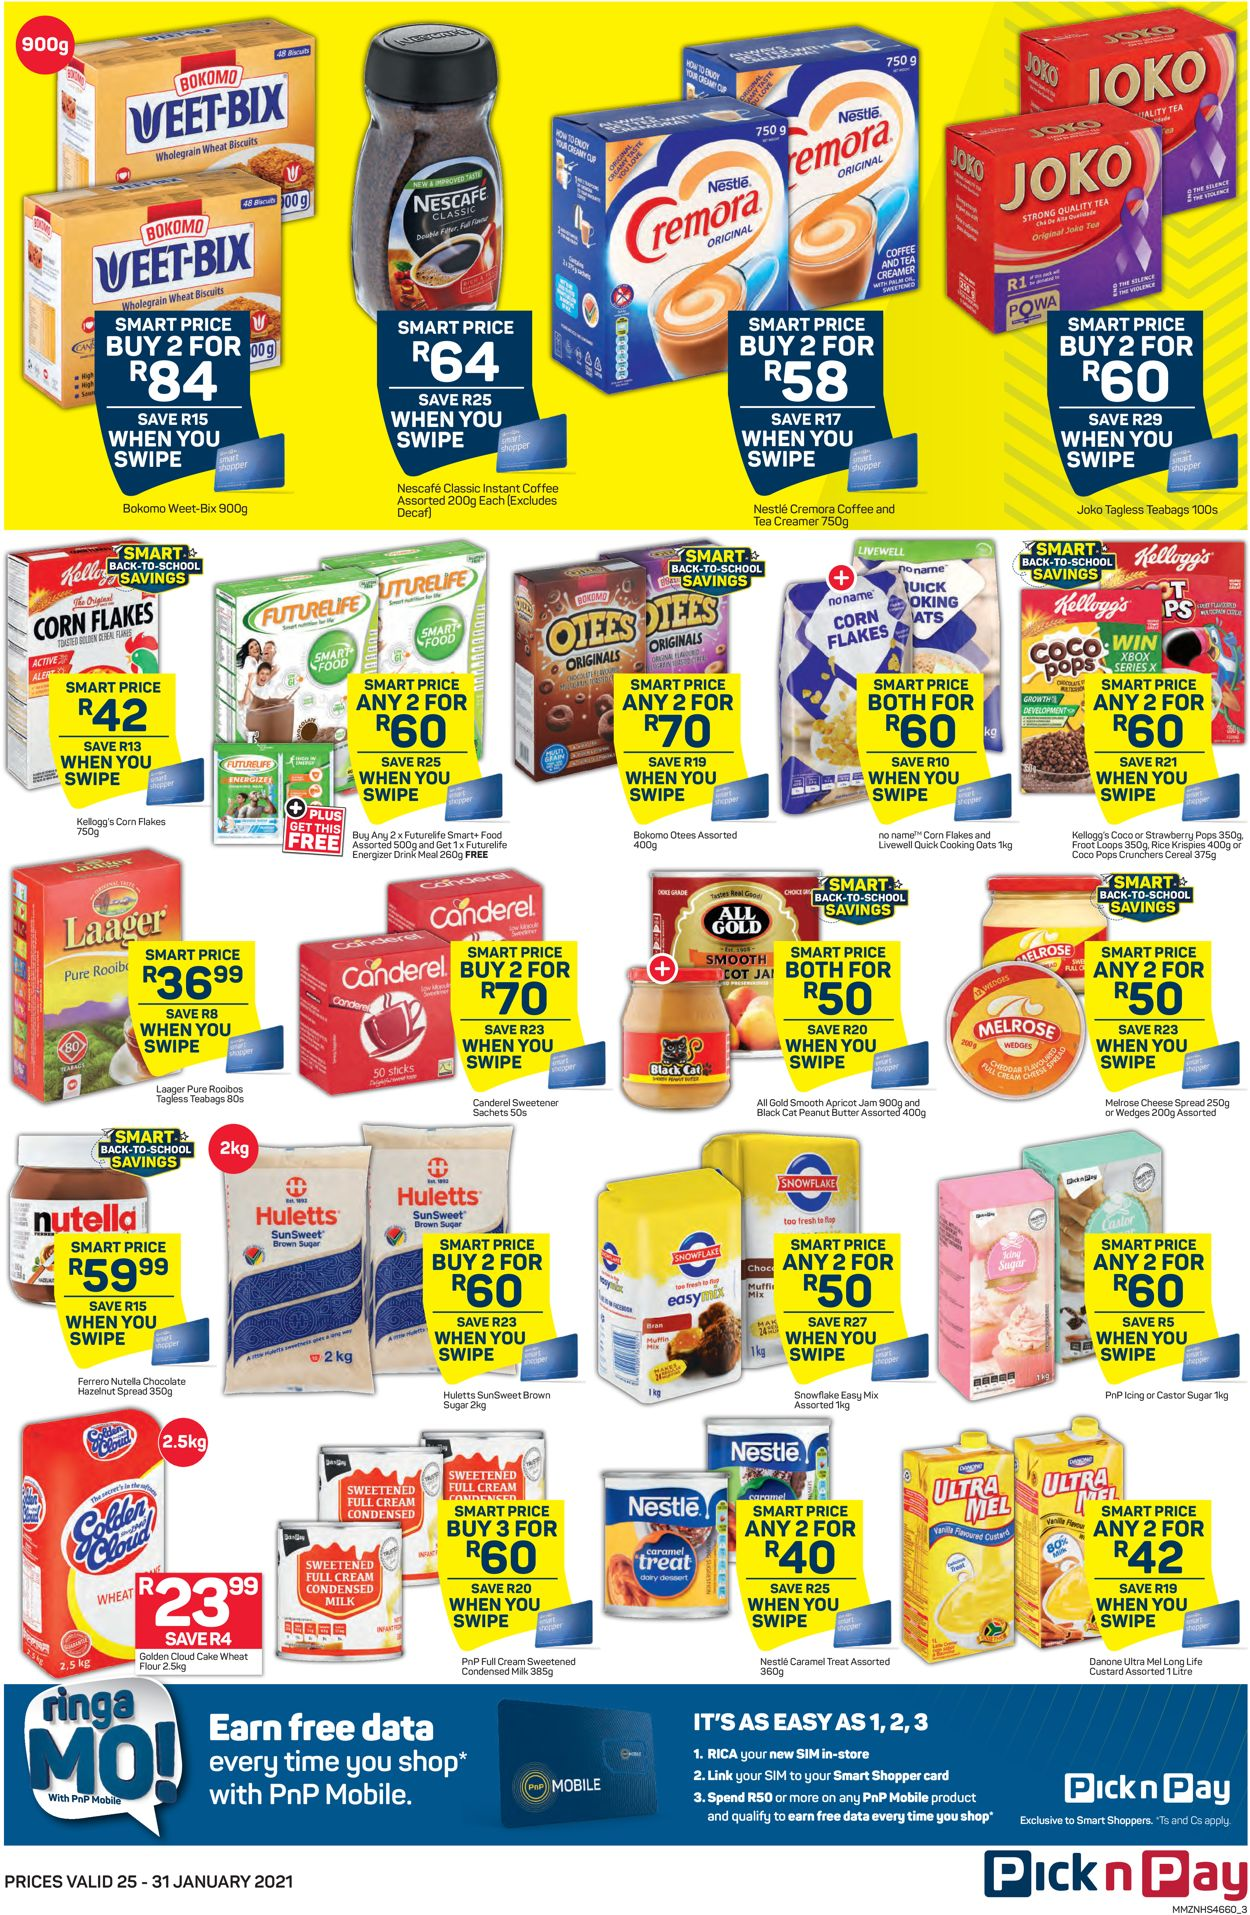 Pick n Pay Smart Price 2021 Catalogue - 2021/01/25-2021/01/31 (Page 3)